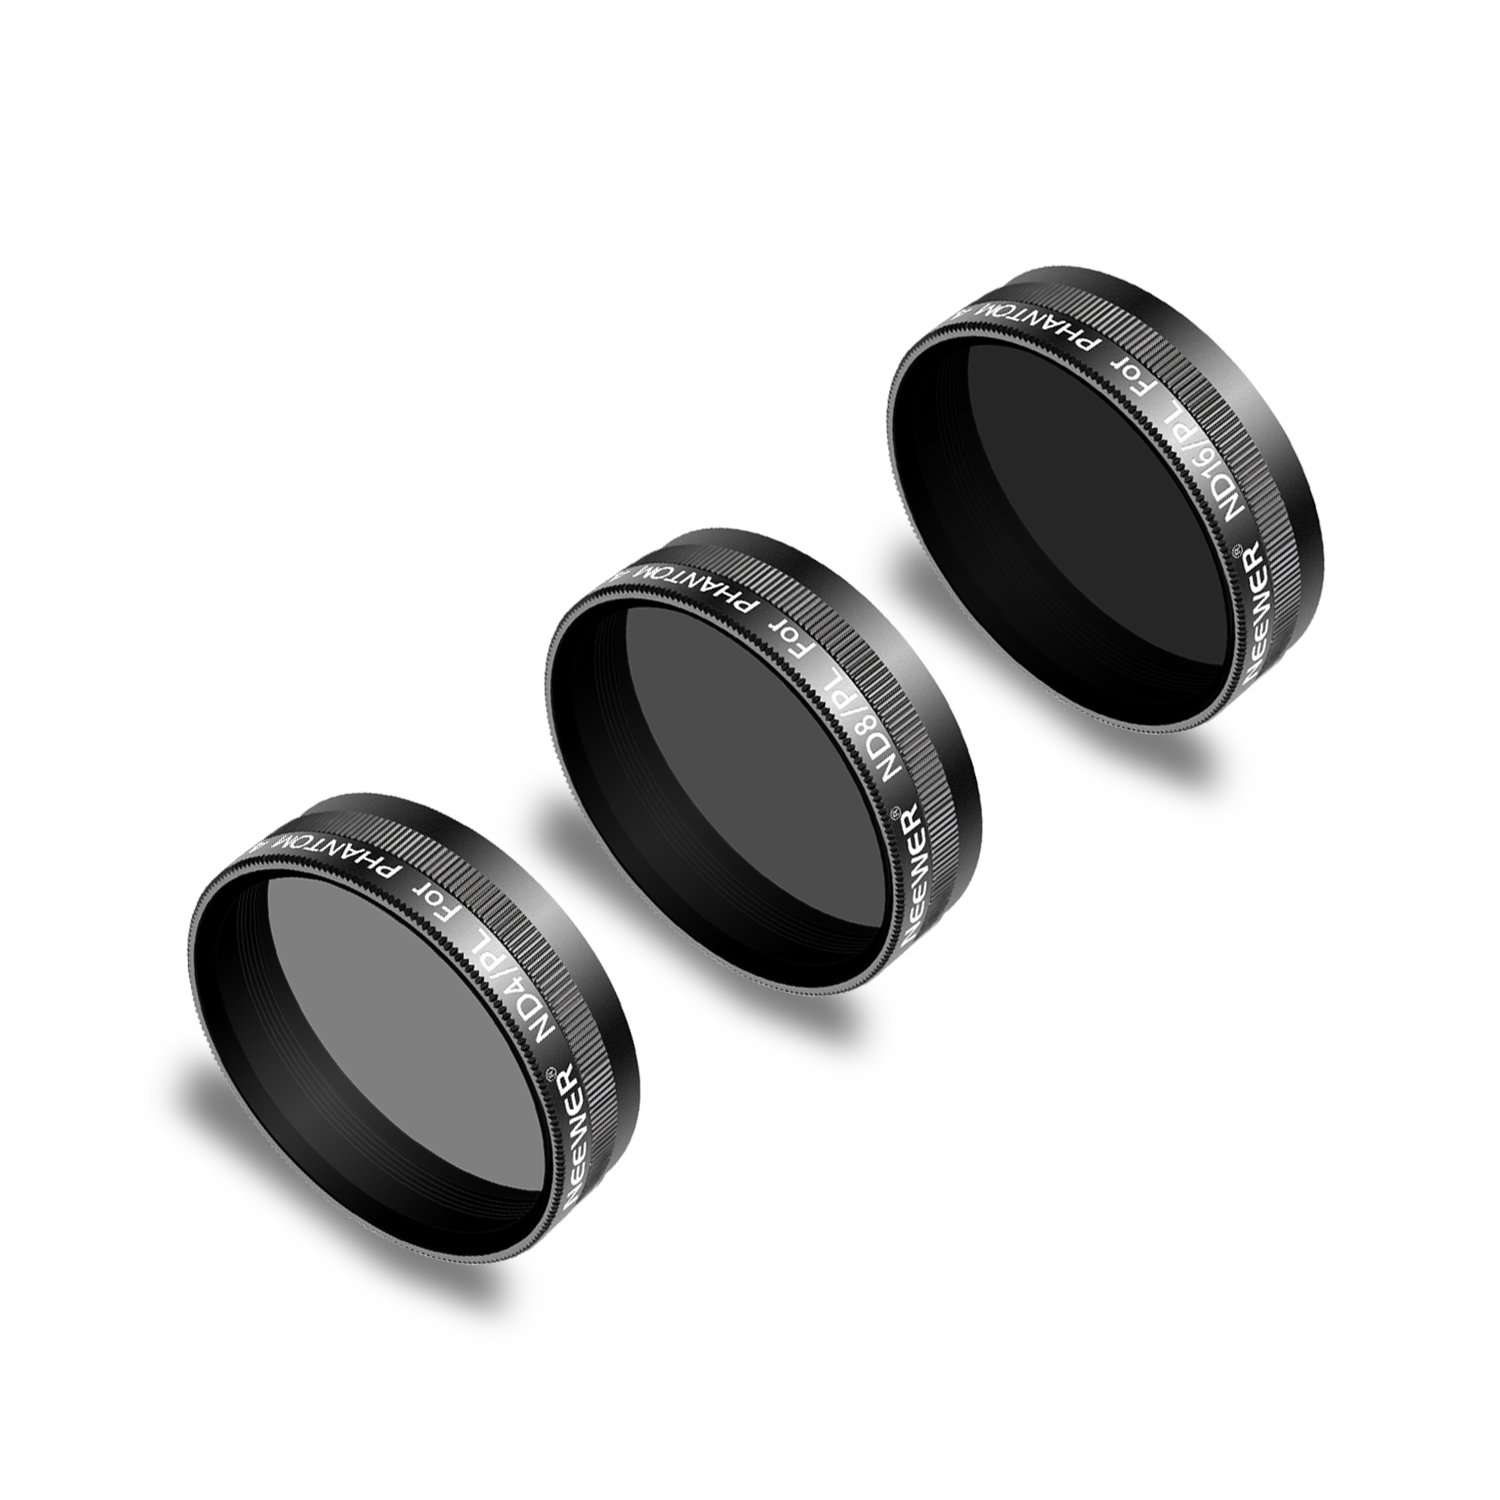 Neewer 3 Pieces Lens Filter Kit for DJI Phantom 4 Pro Drone Quadcopter Includes: ND4/PL, ND8/PL, ND16/PL, Made of Multi Coated Optical Glass Waterproof Aluminum Alloy Frame (Black) by Neewer